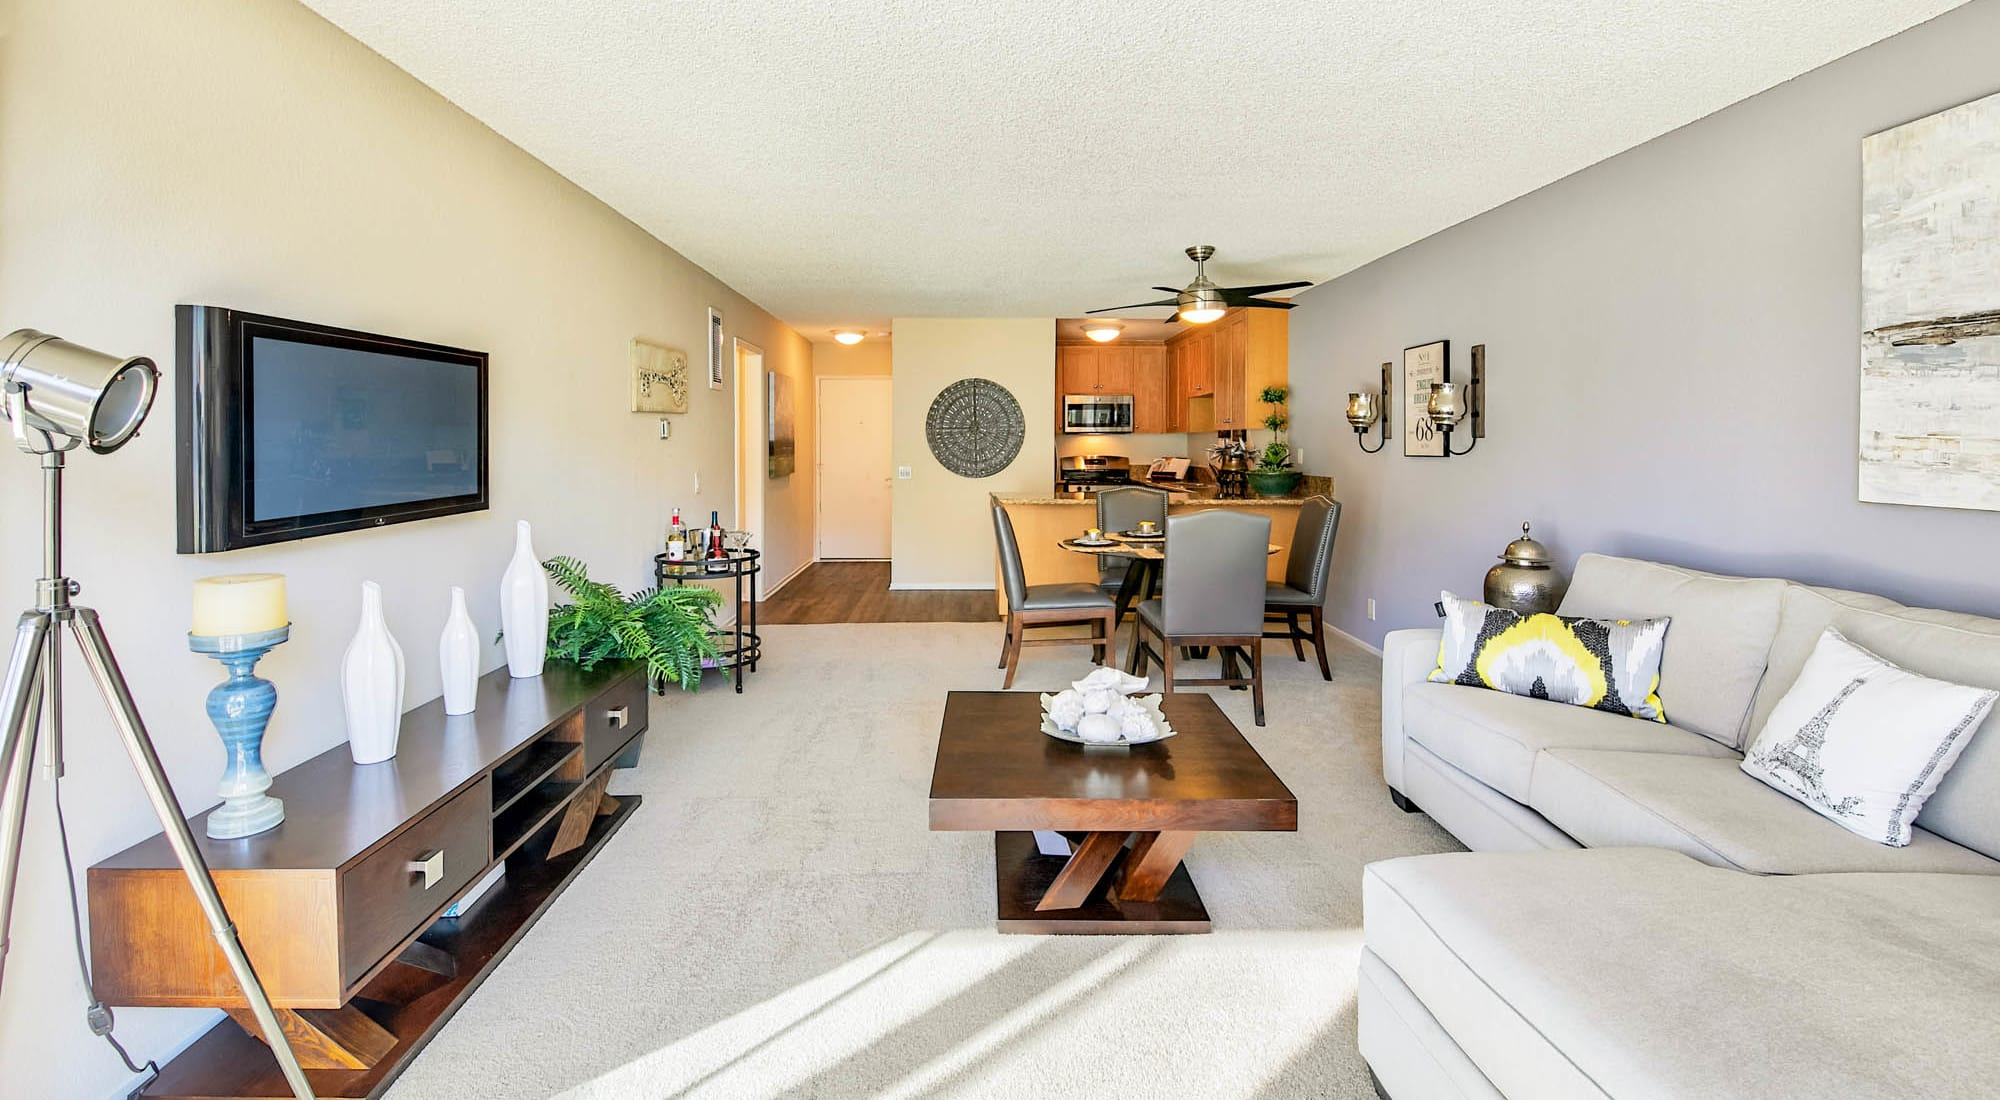 Spacious and well-furnished open-concept model home at Waters Edge at Marina Harbor in Marina Del Rey, California